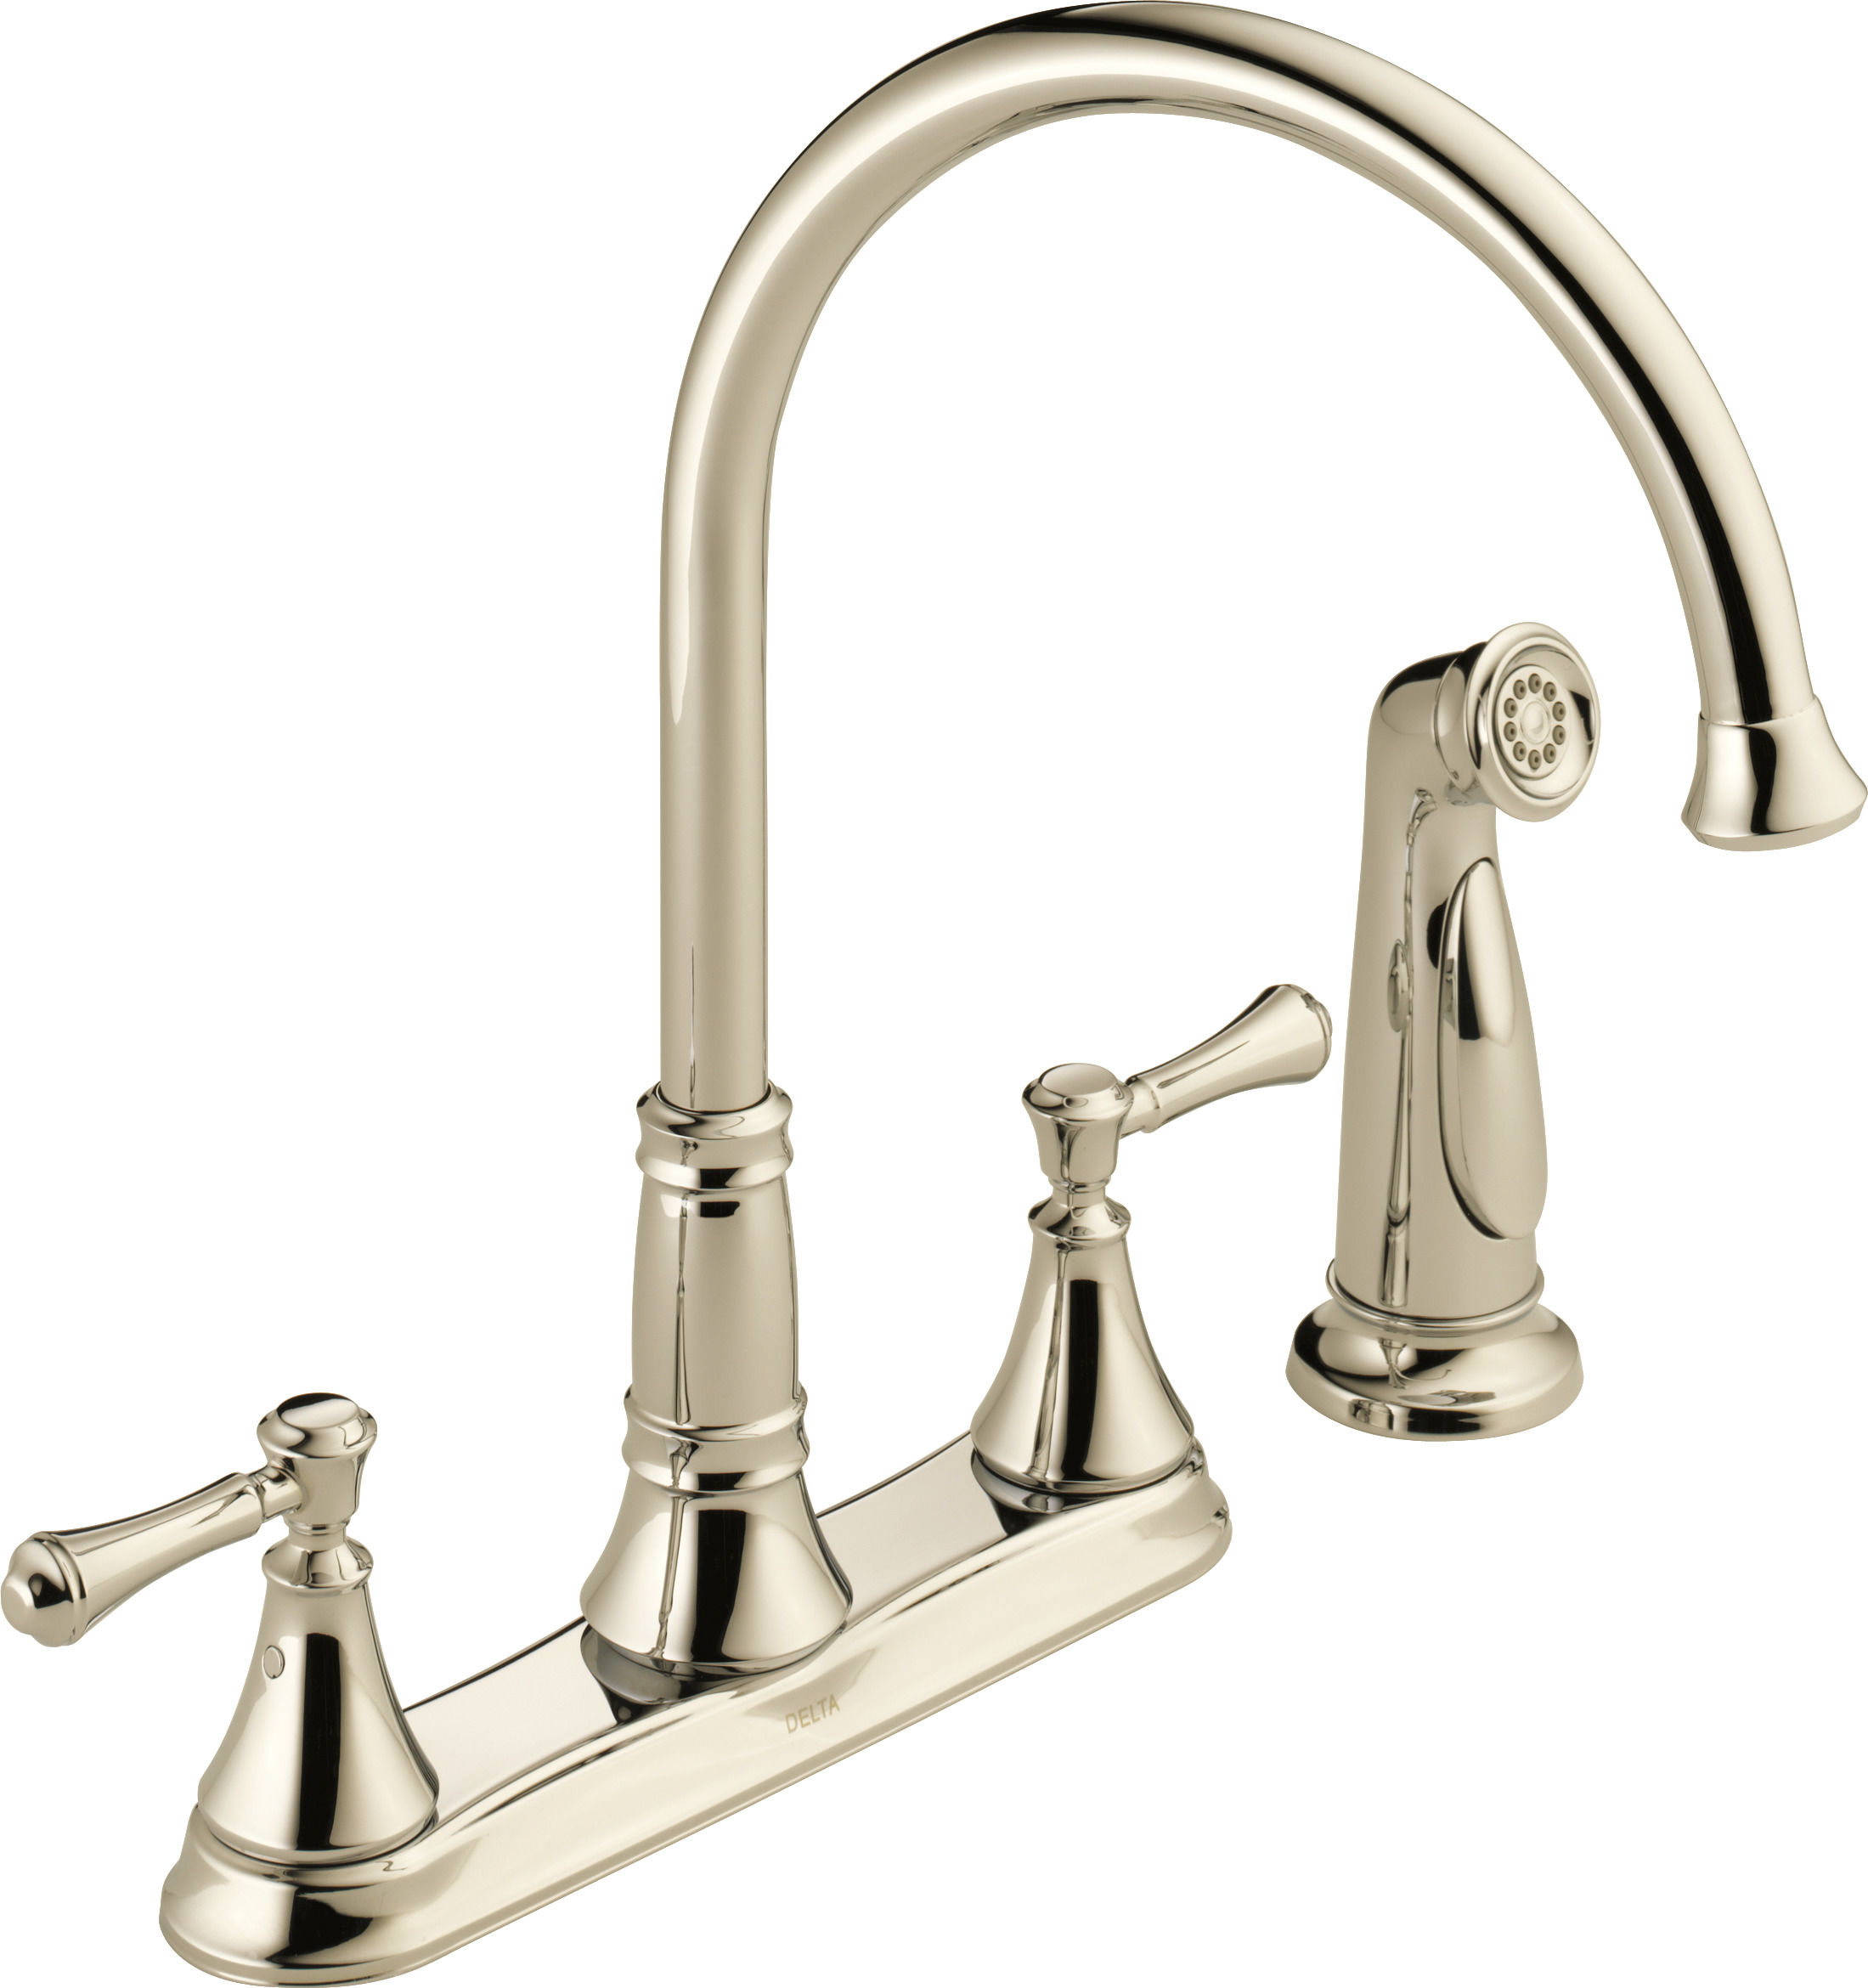 trinsic with down wayfair magnatite reviews single seal list improvement technology handle diamond pdx pull docking parts and kitchen touch faucets faucet home delta